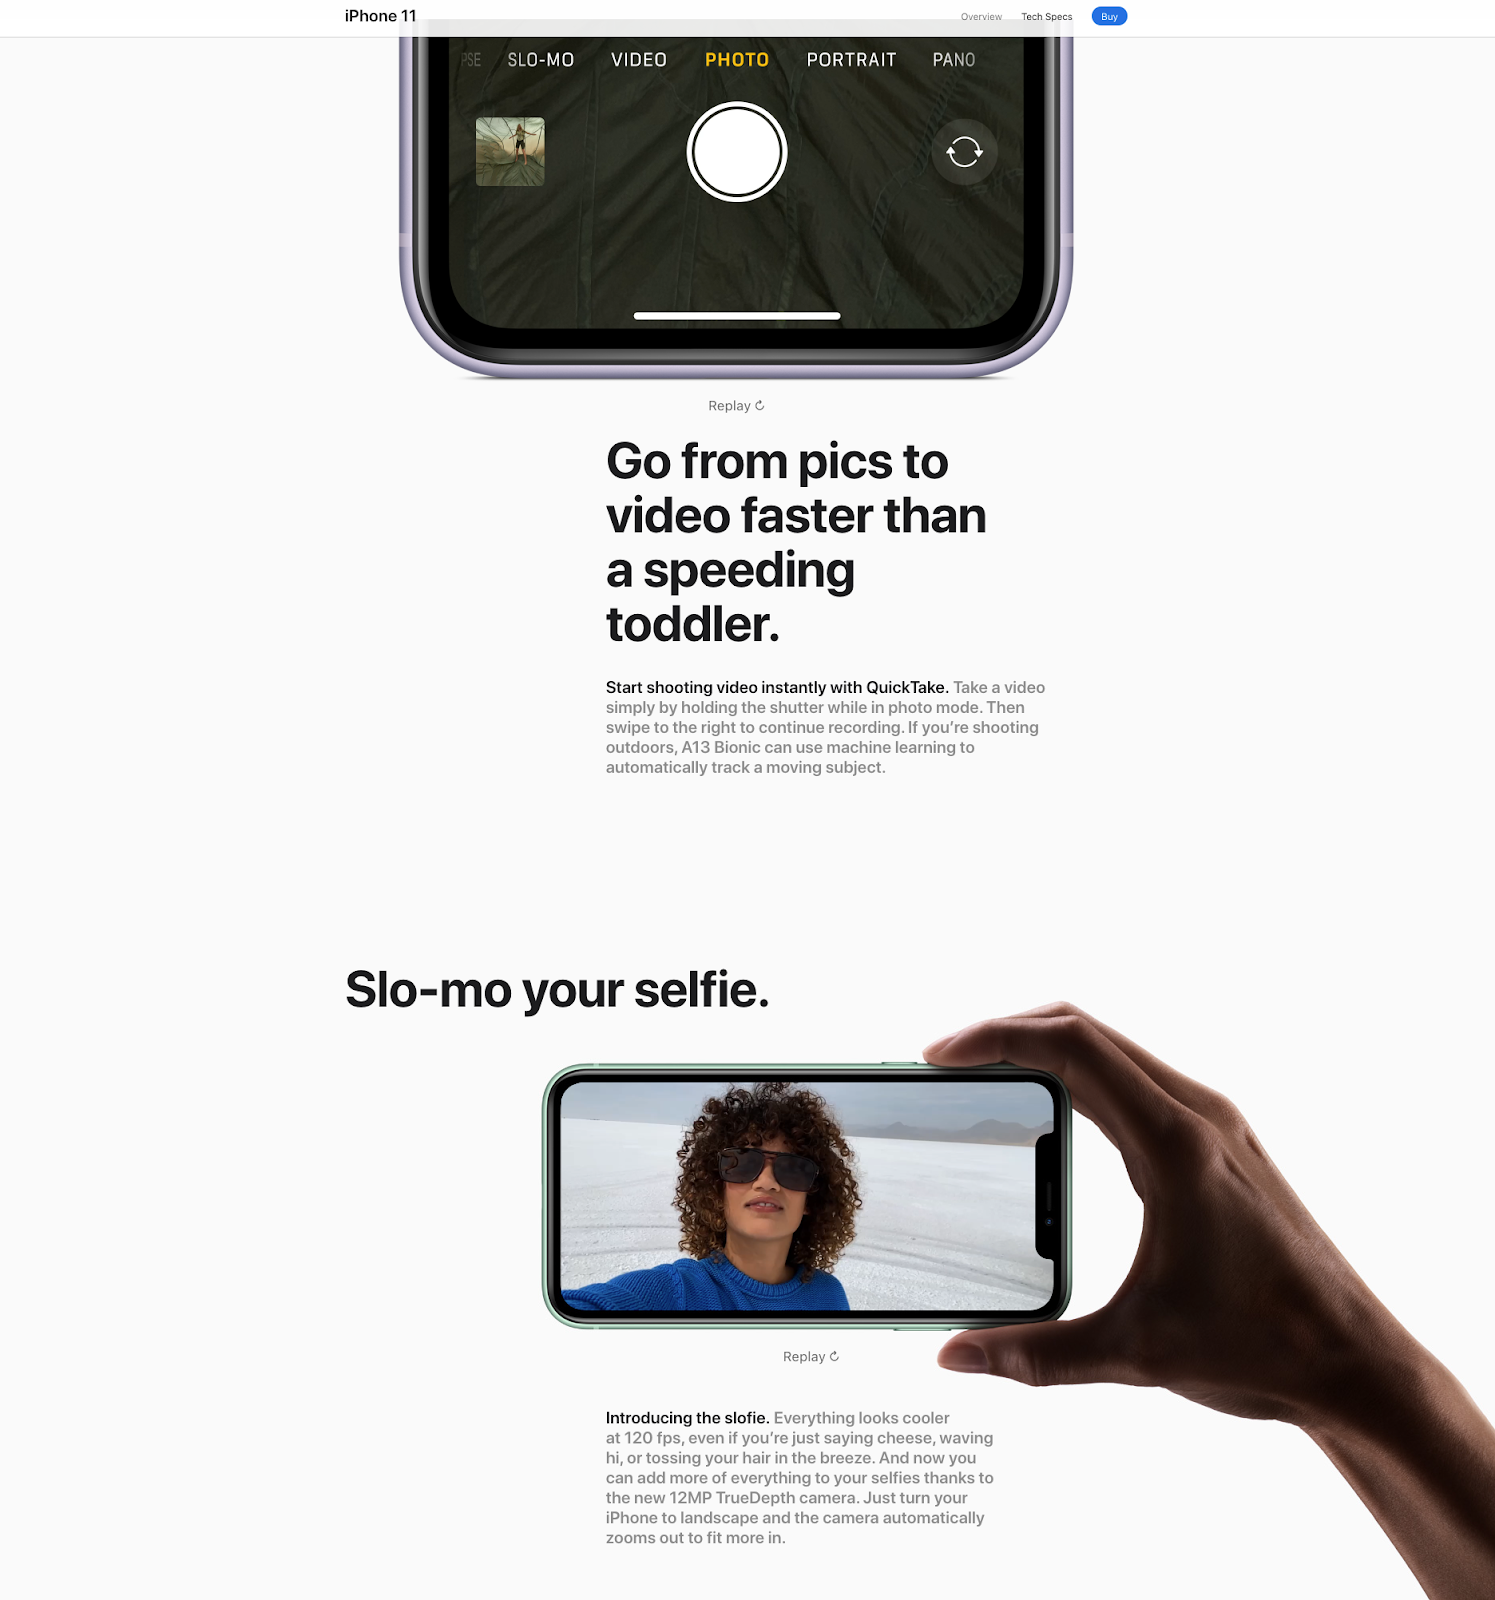 Apple sales page for their new iPhone